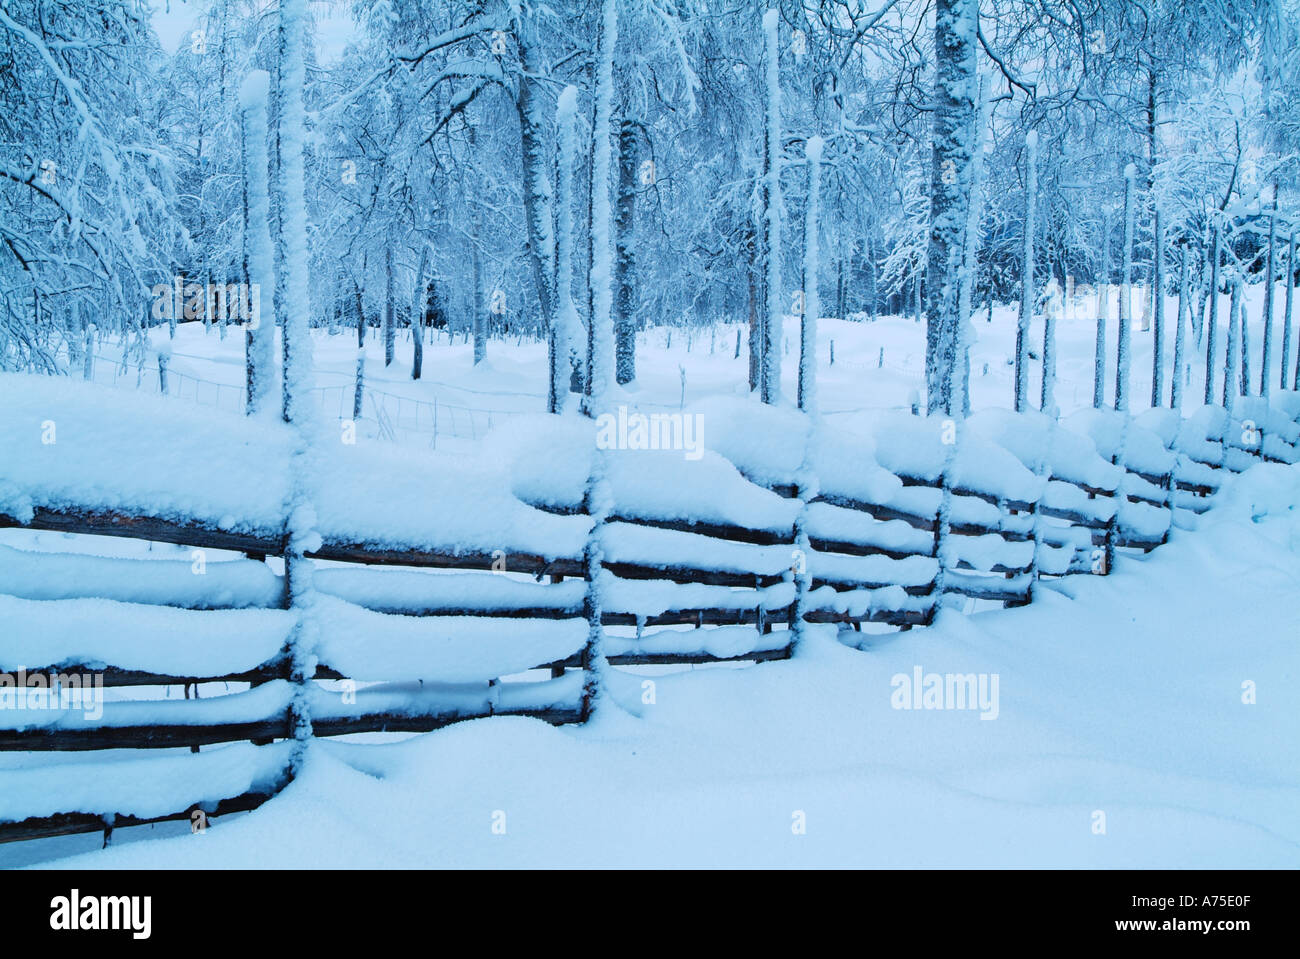 Snow Covering Fence And Trees In Rural Varmland Sweden